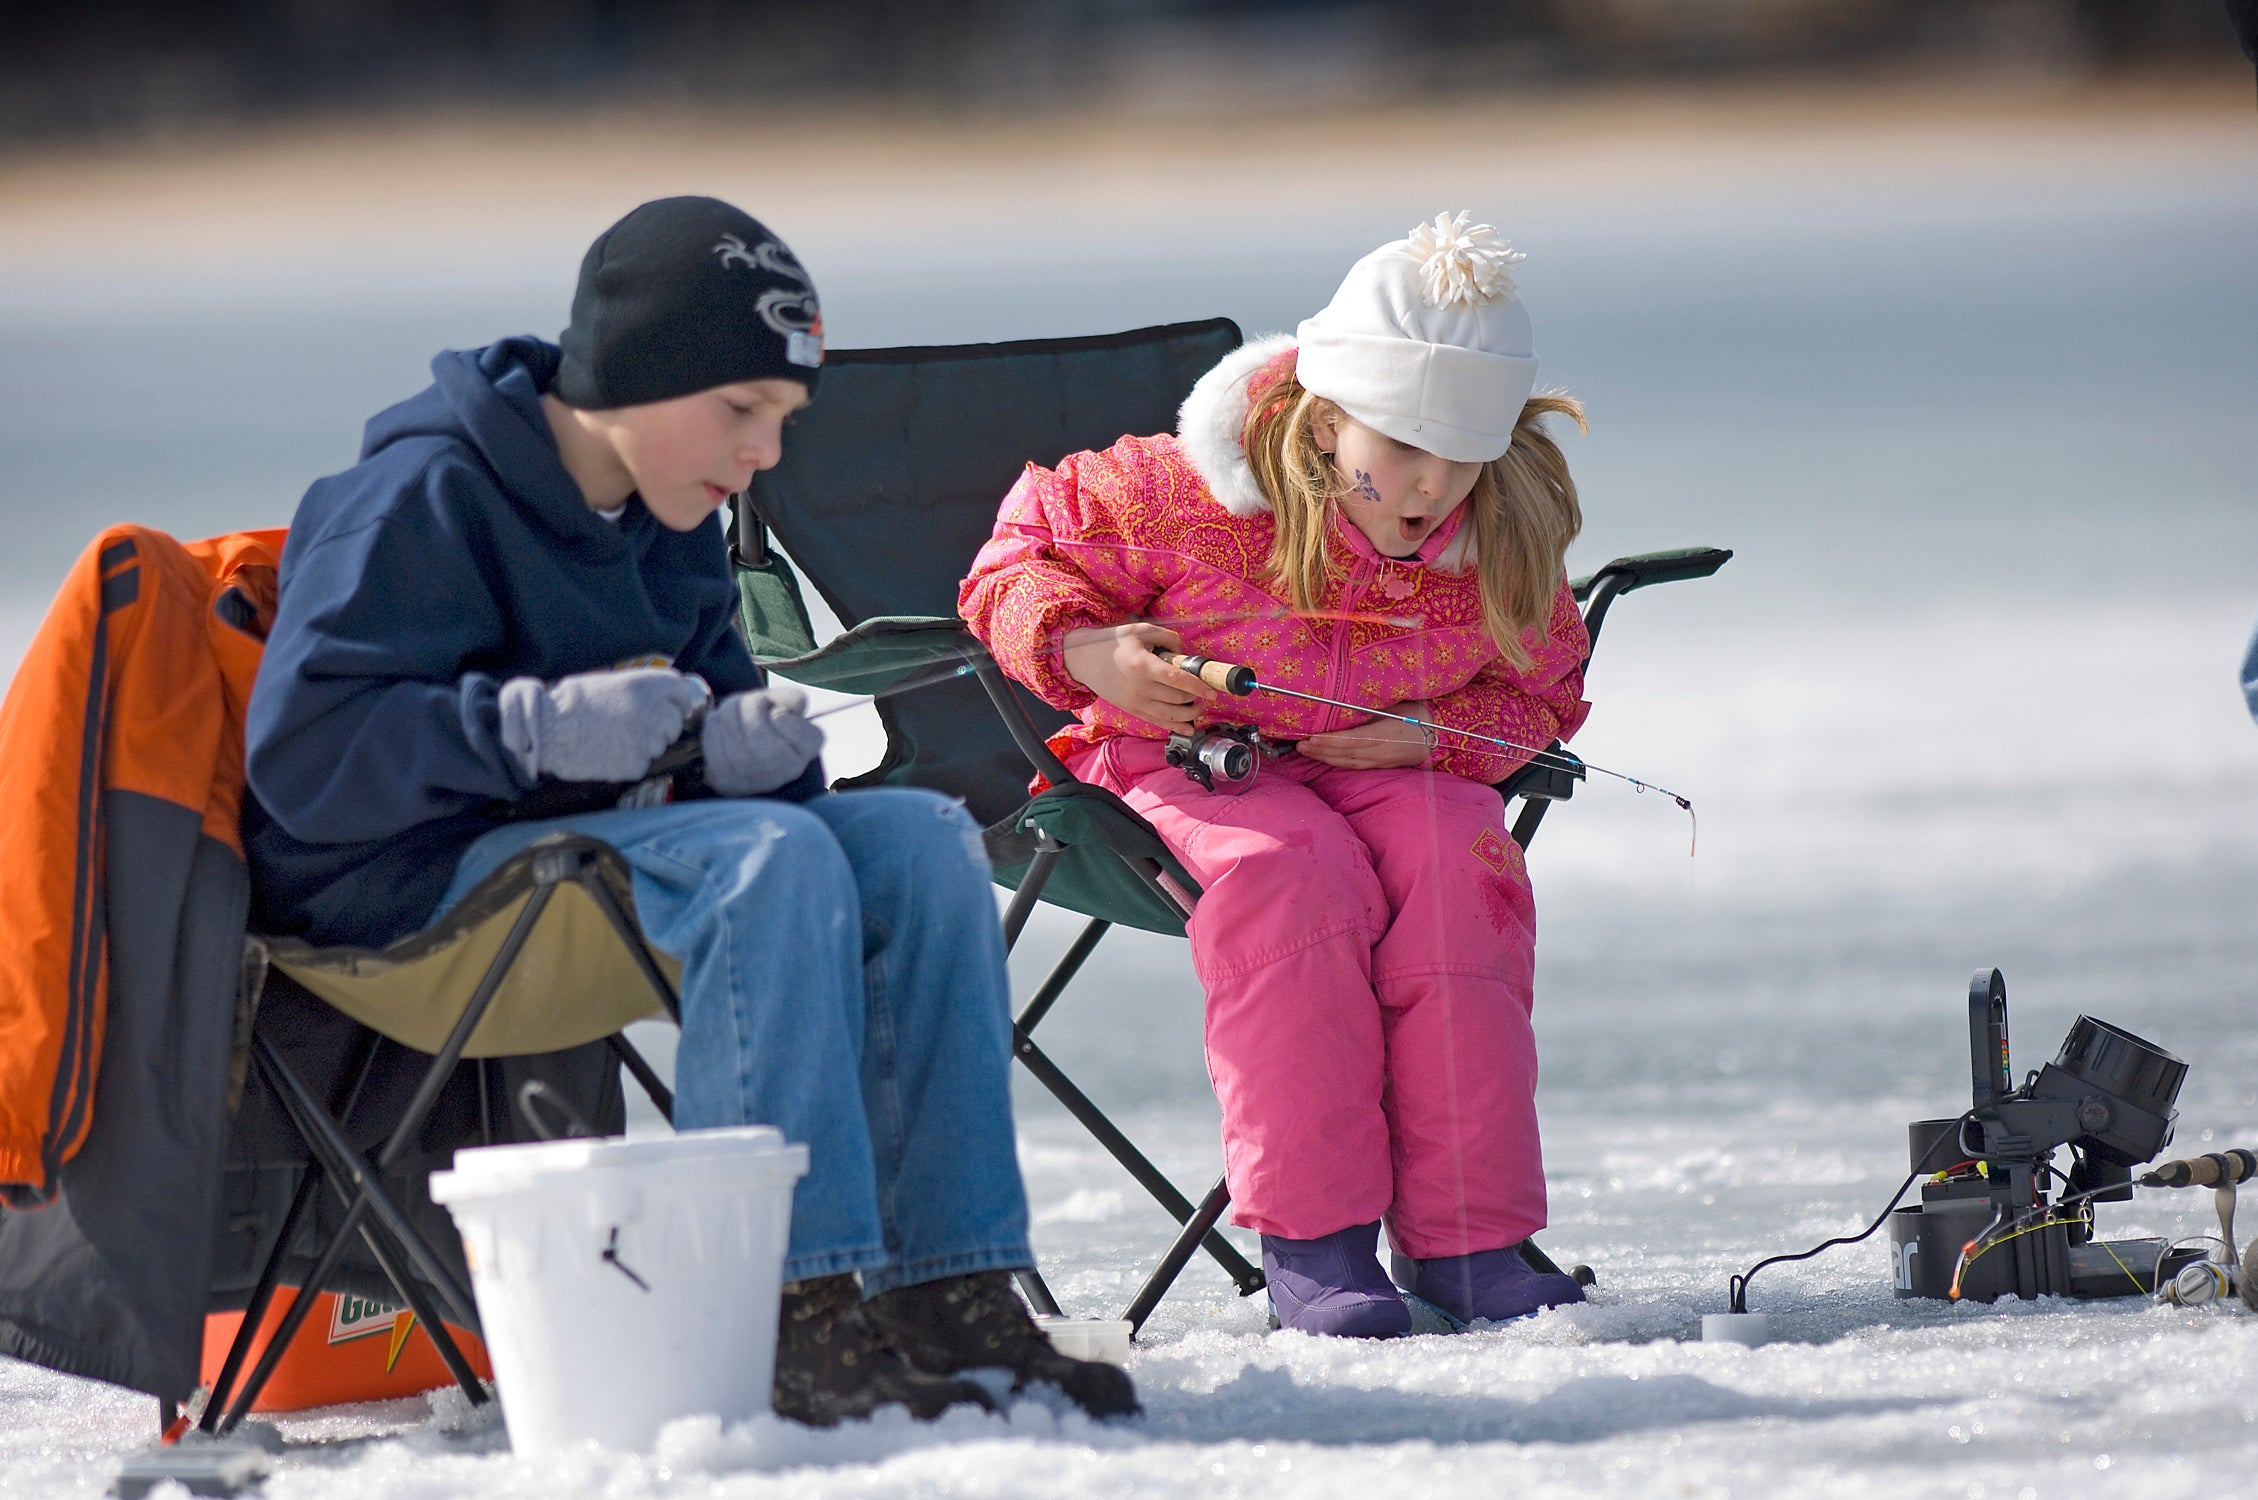 How Old Do You Need To Be To Fish Legally? Canadian Court Rules There Is No Minimum Age